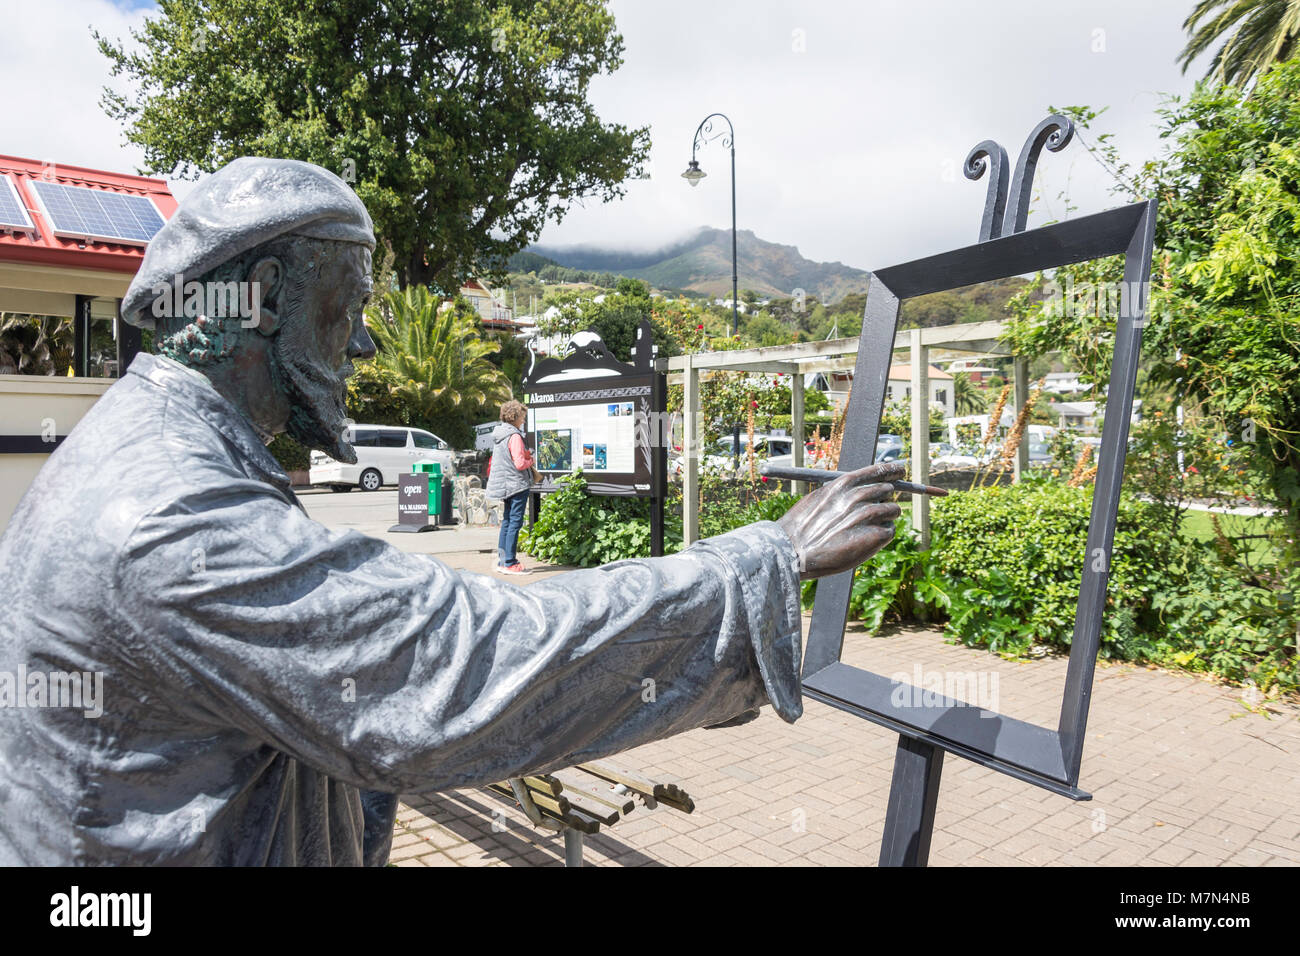 'Artist with palette' sculpture, Rue Lavaud, Akaroa, Banks Peninsula, Canterbury Region, New Zealand - Stock Image